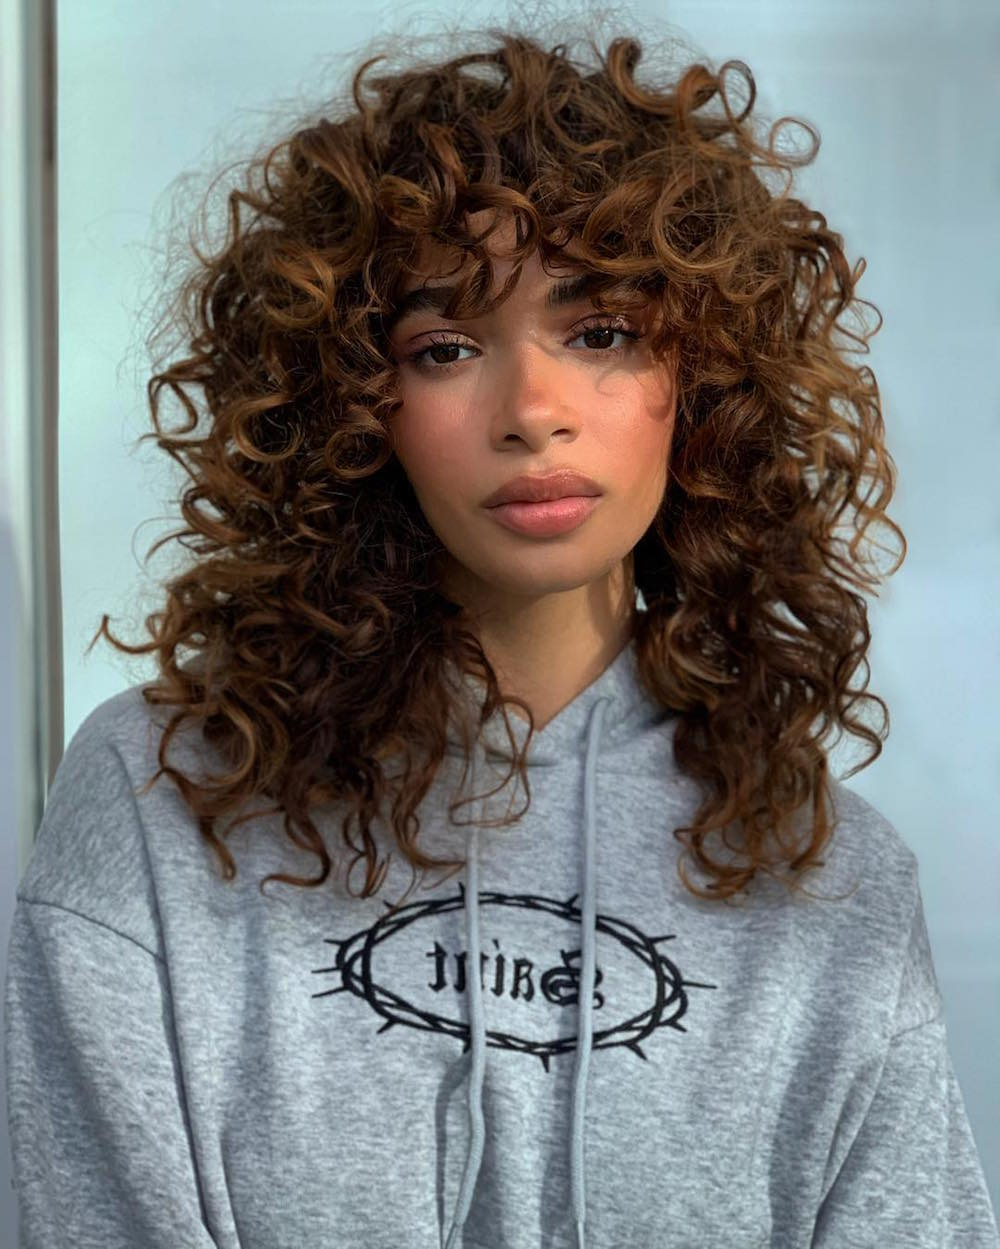 The Shag Haircut Is The It Style For 2019 – Thefashionspot With Regard To Best And Newest Long Curly Shag Hairstyles With Bangs (View 10 of 20)